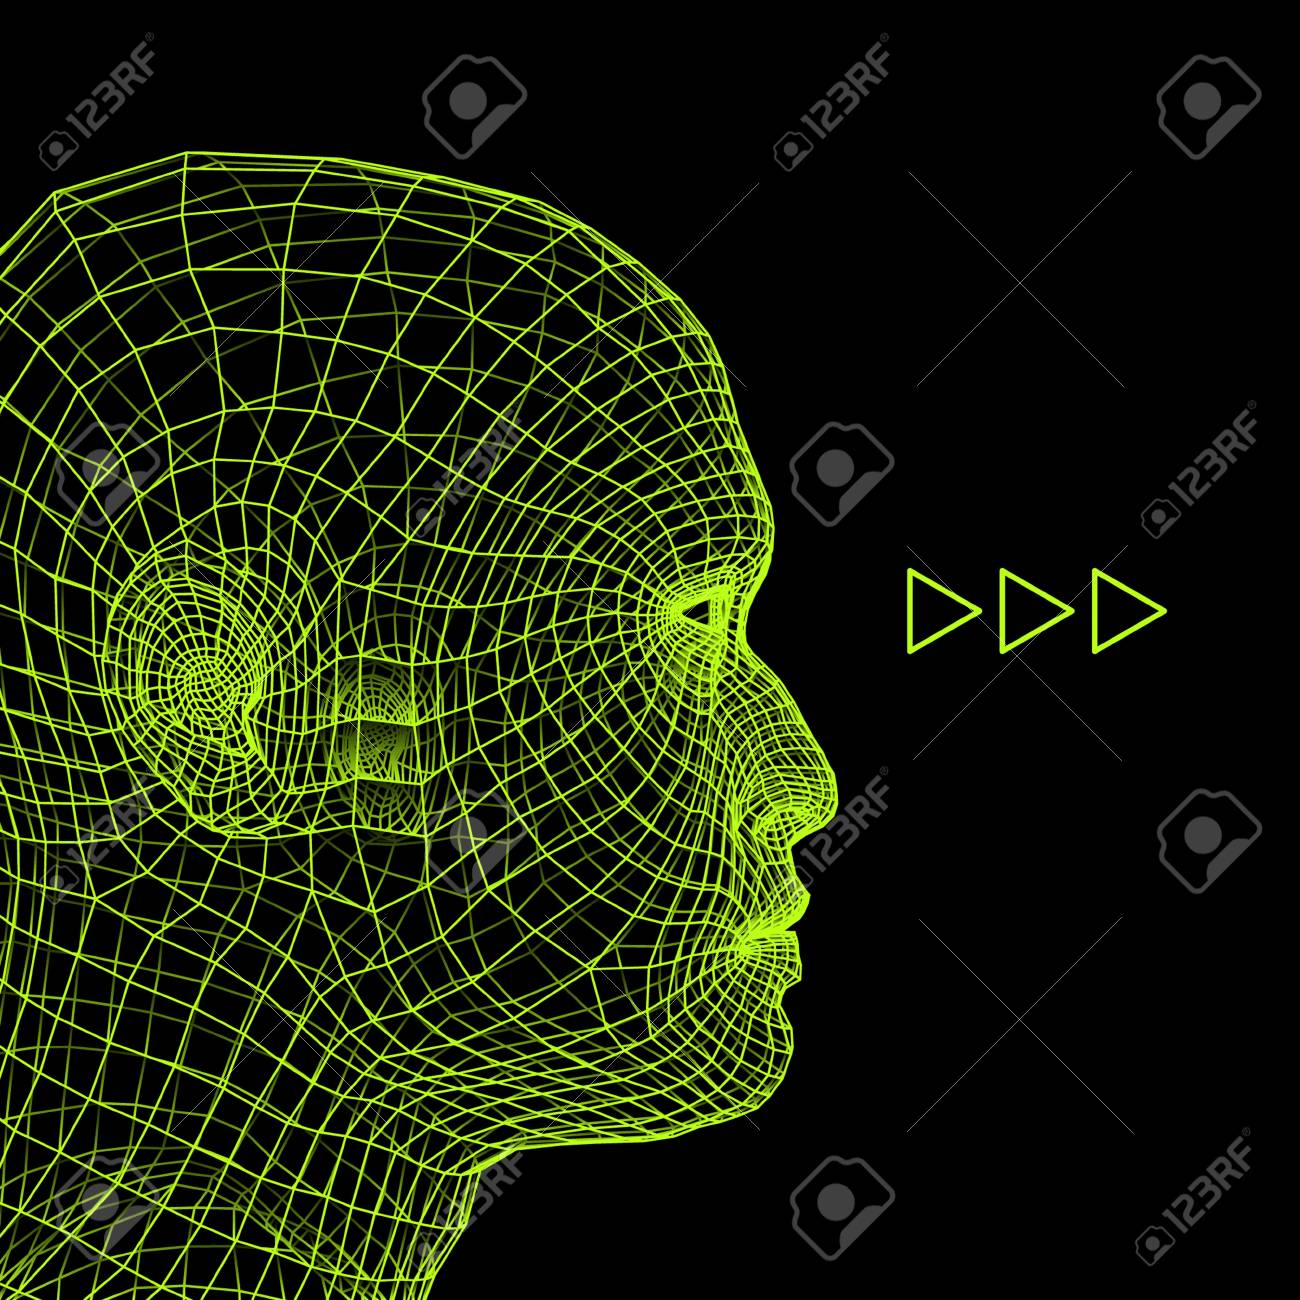 human head wire model  human polygon head  face scanning  view of human  head  3d geometric face design  3d polygonal covering skin